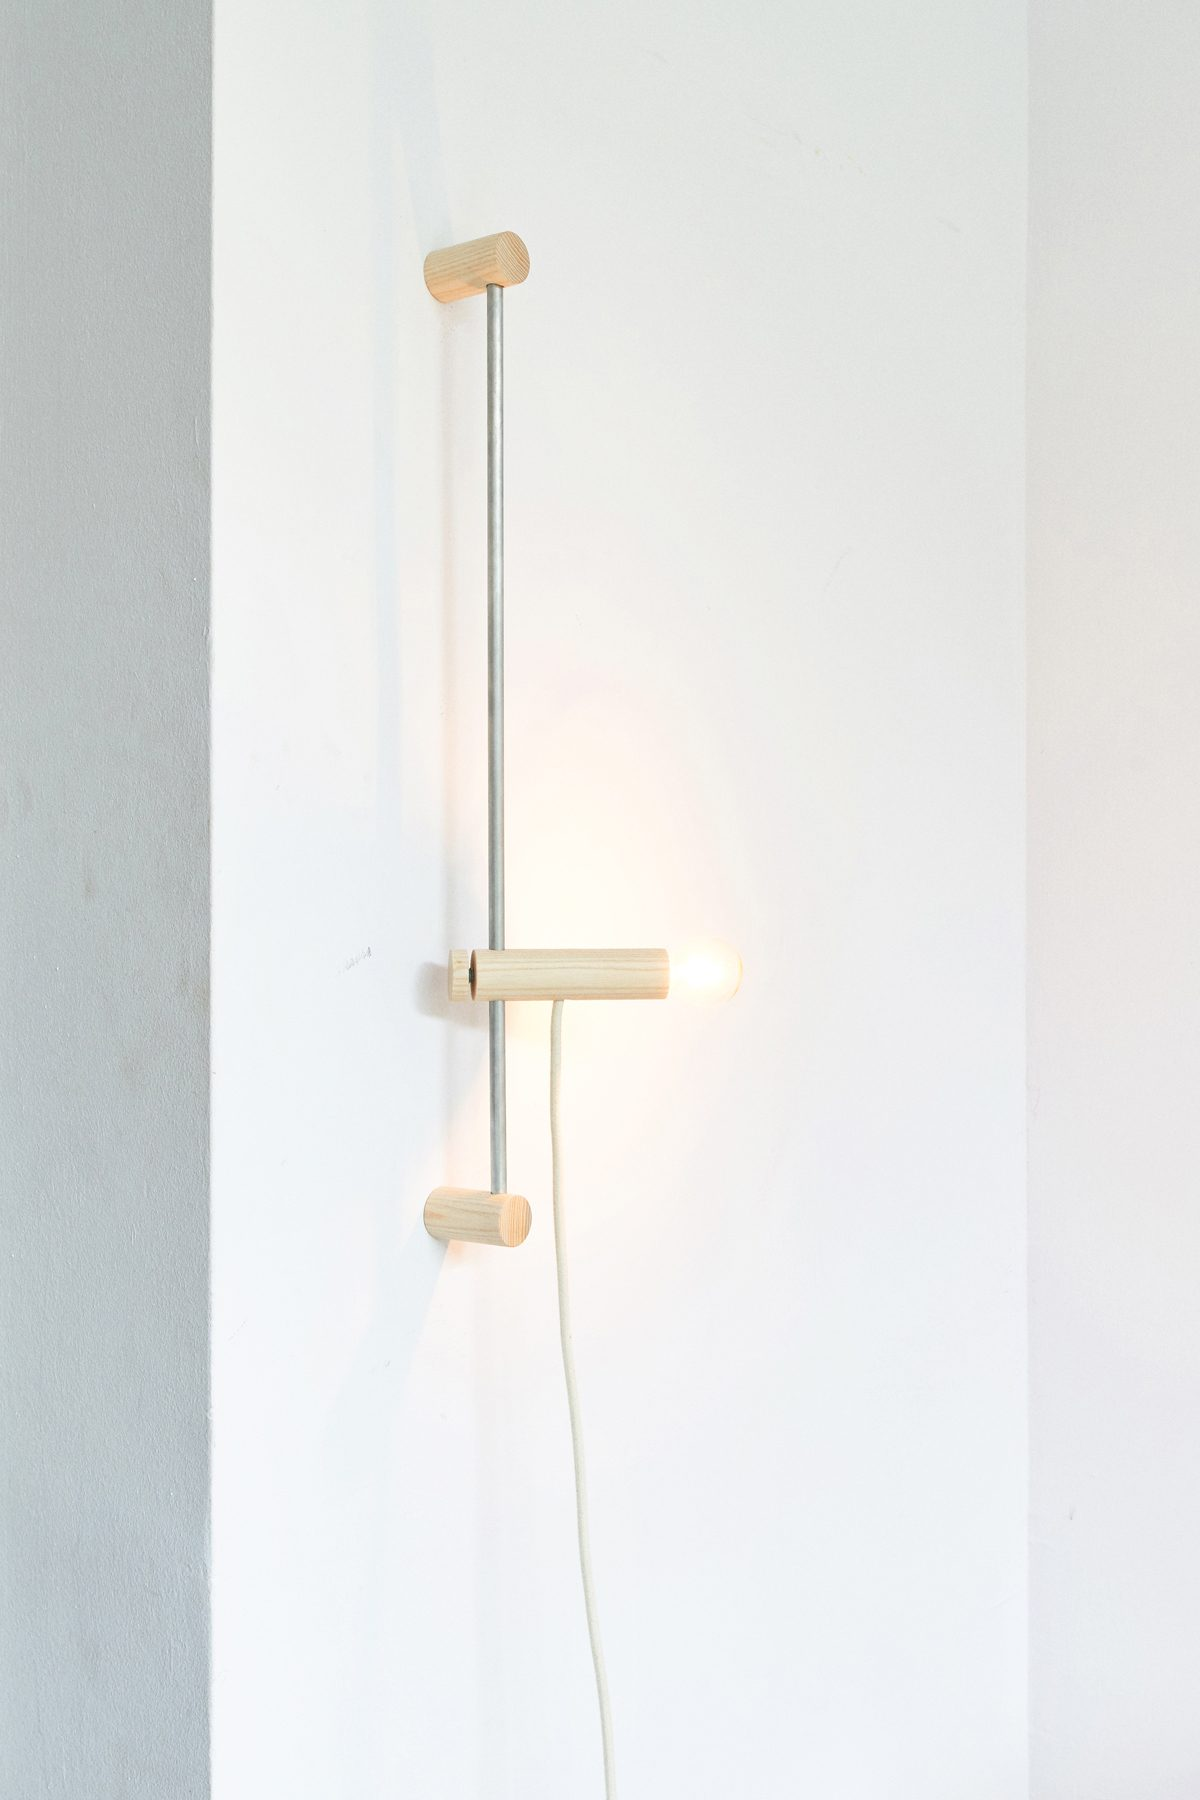 Wall lamp SET by STILST – Gimmii shop